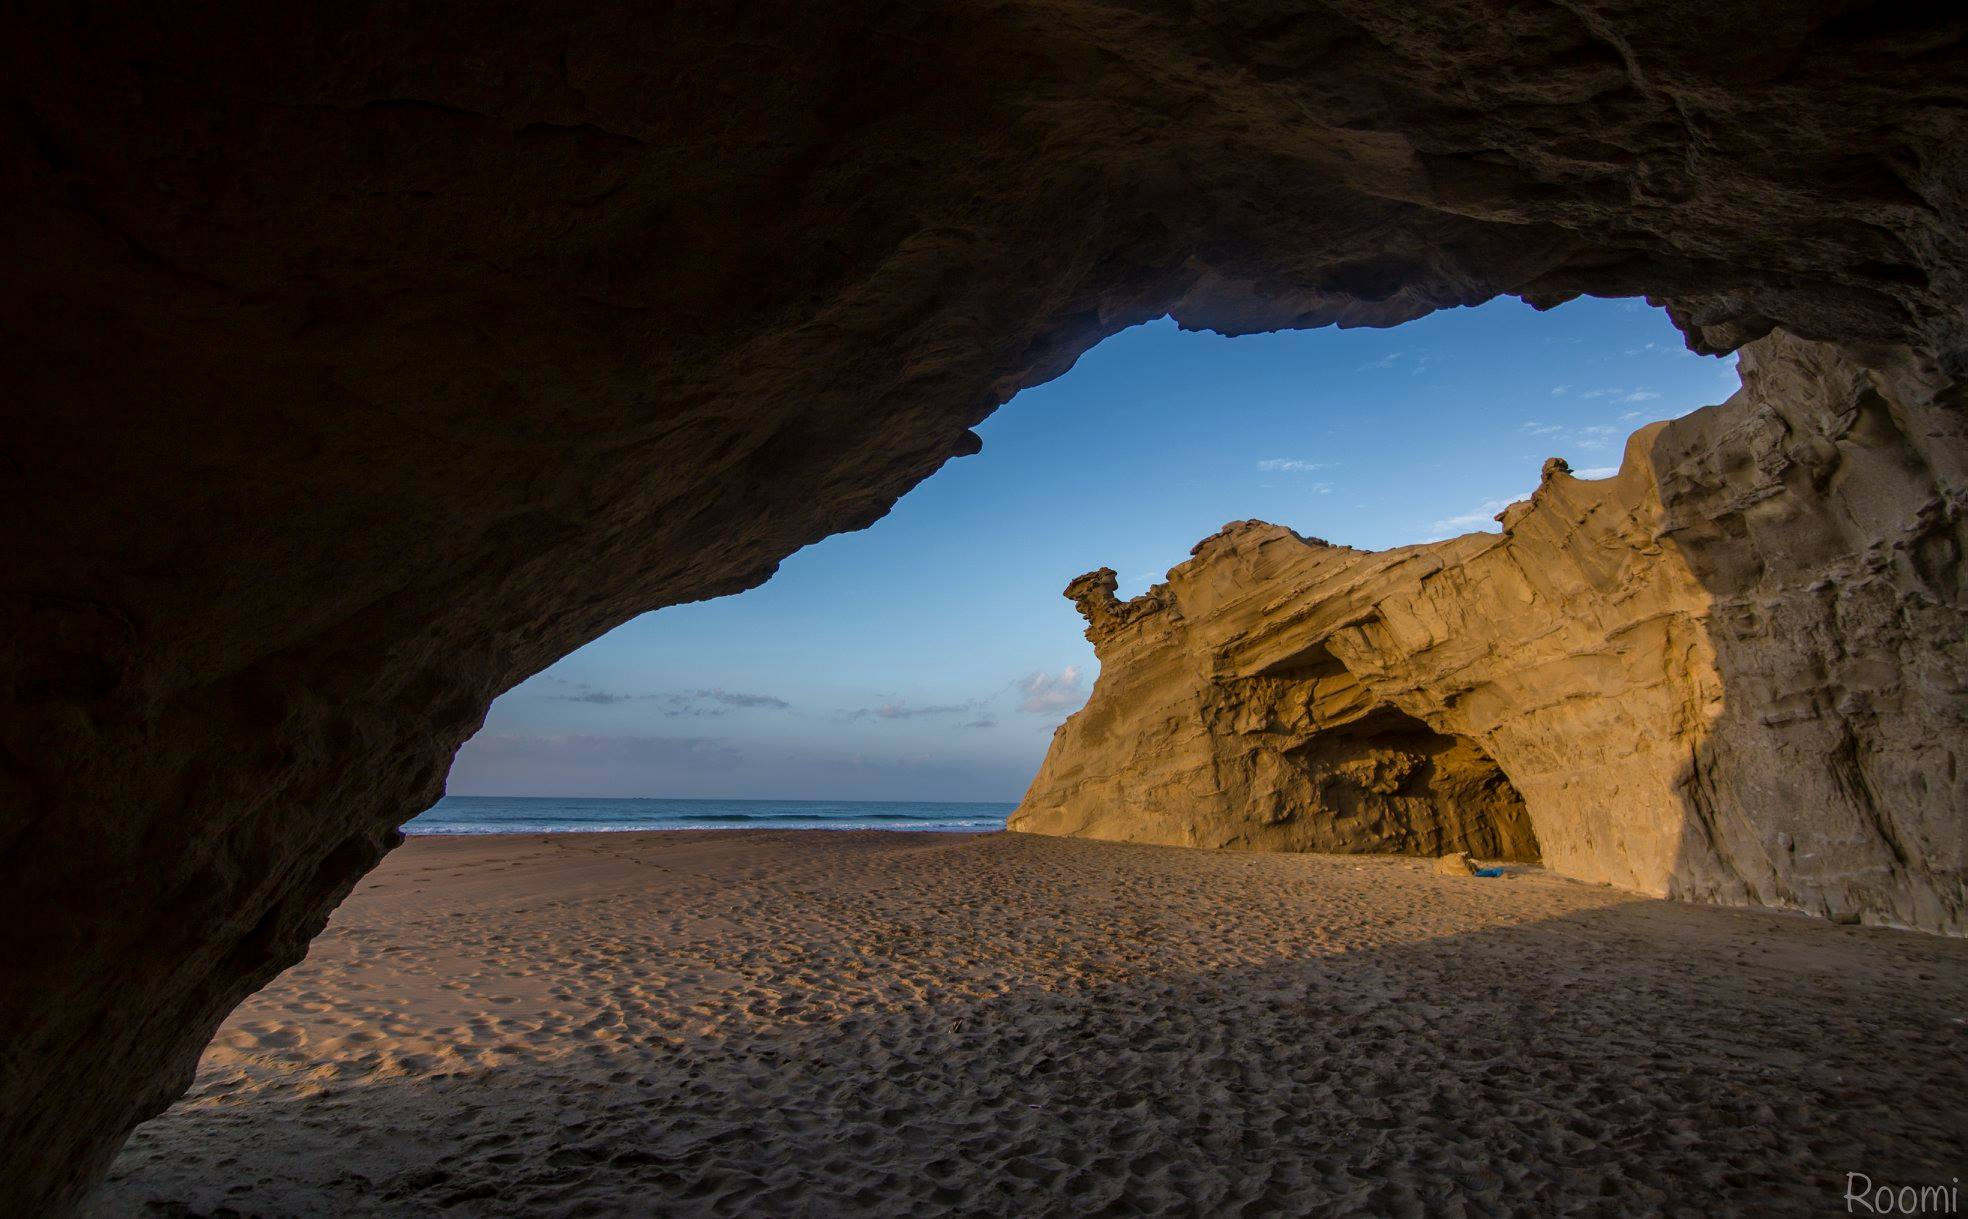 View from cave at sapat beach, Balochistan, Pakistan